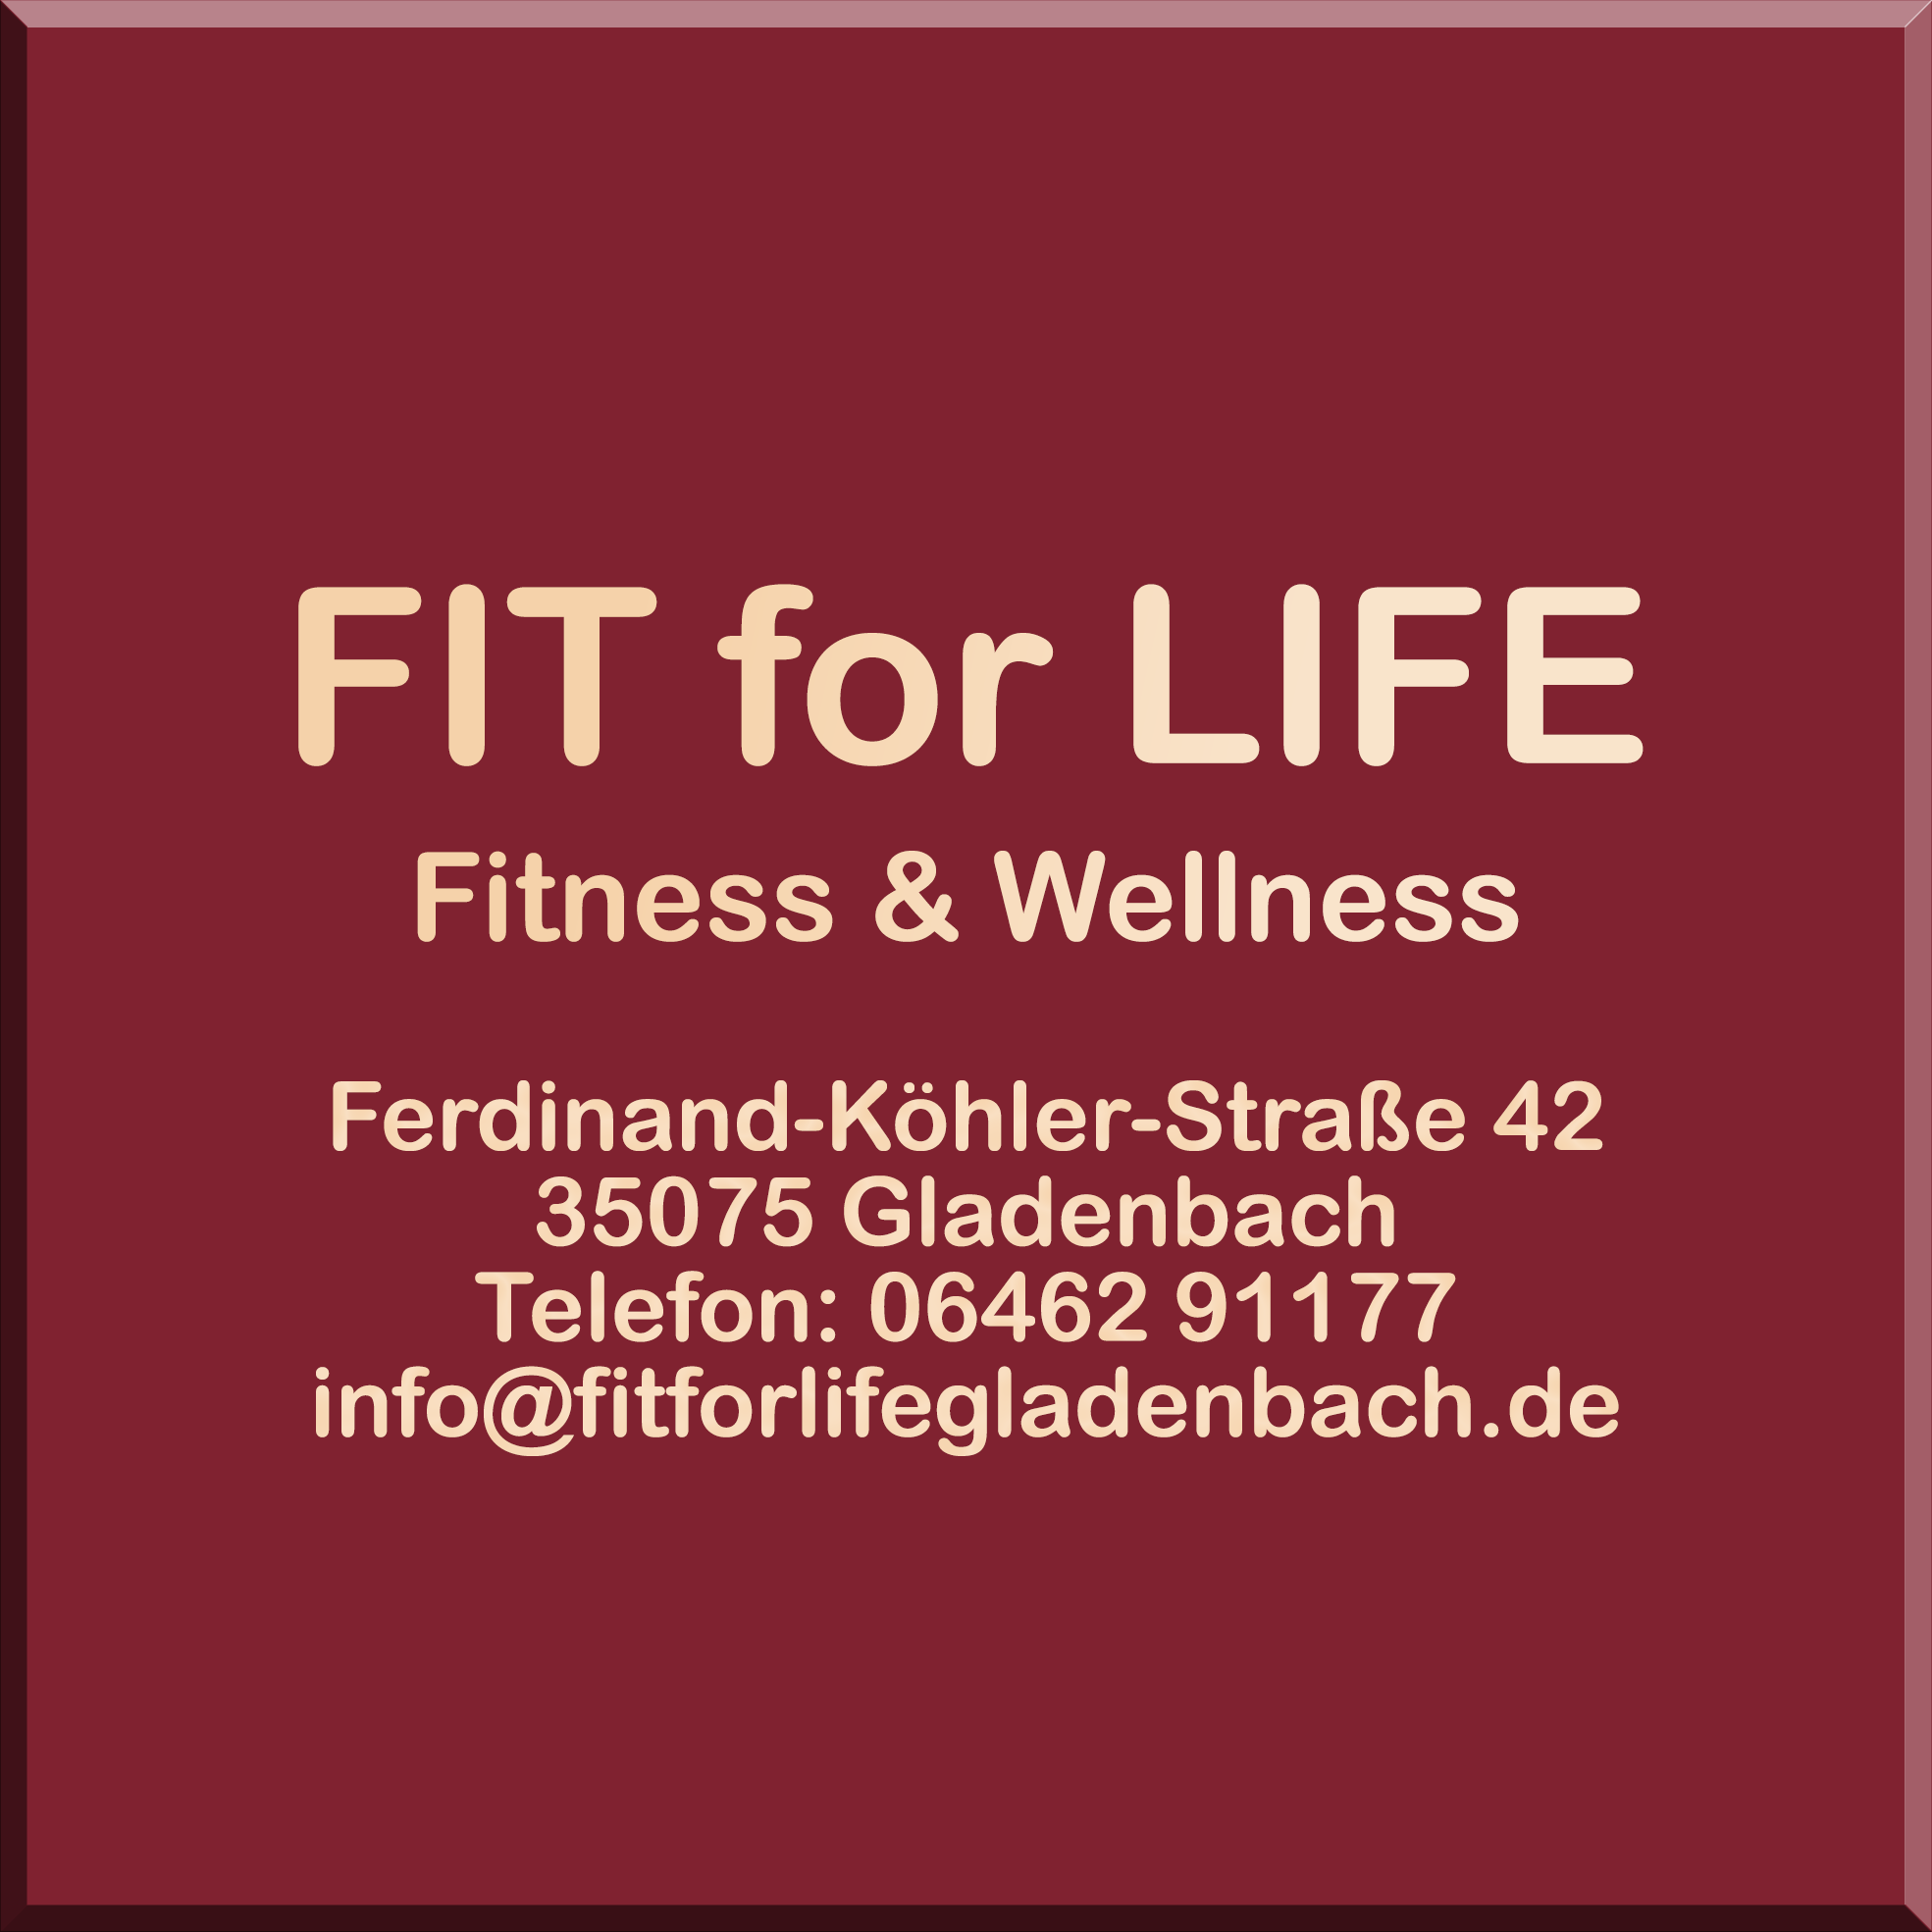 FIT for LIFE Logo mit Anschrift